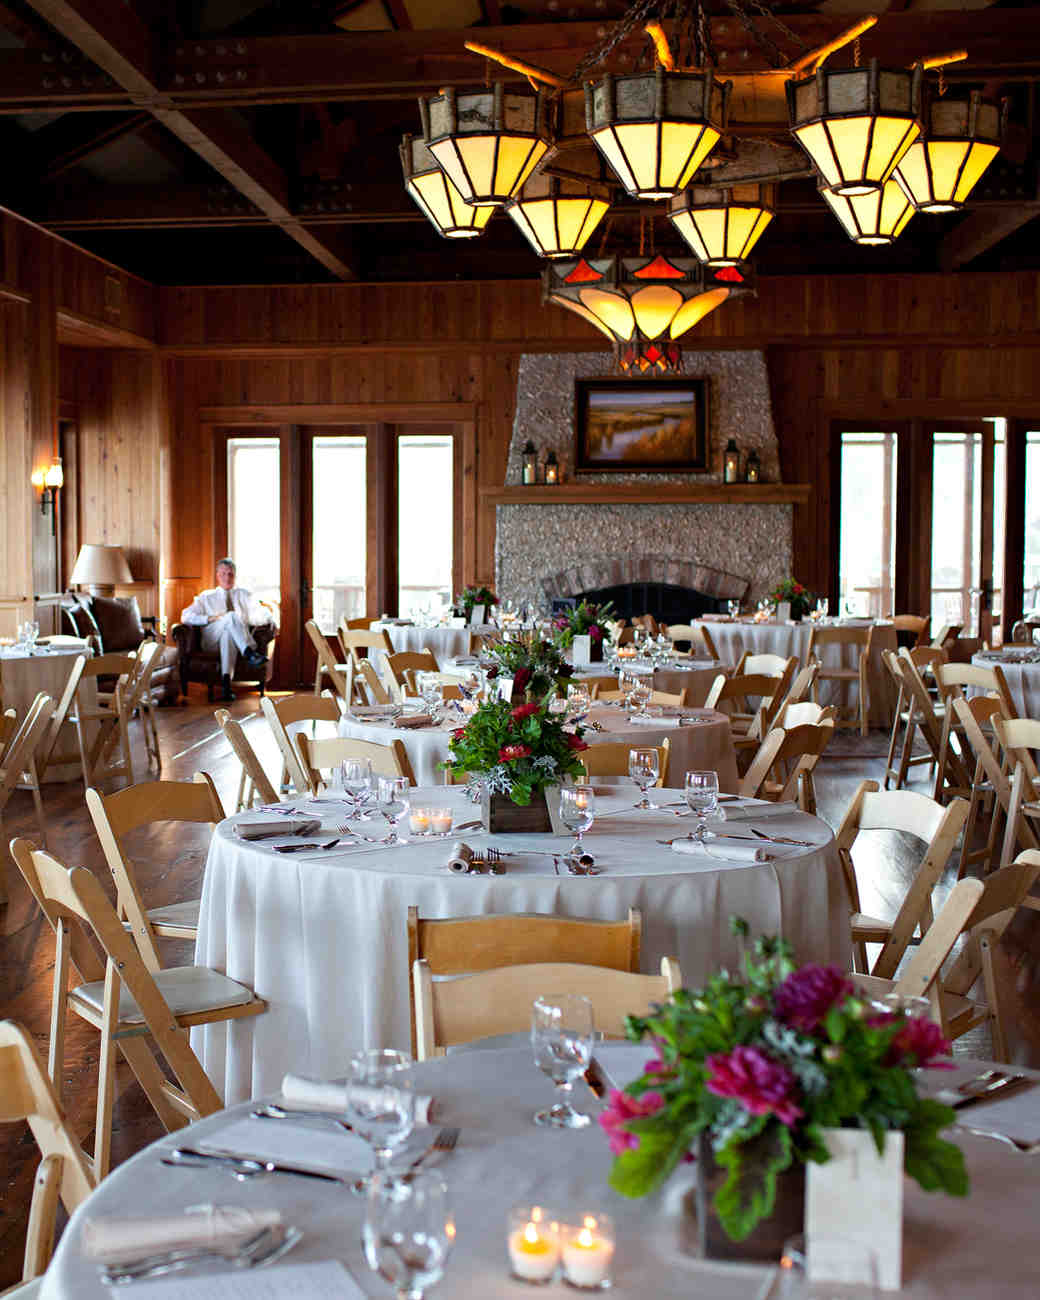 Dinner Ideas For Wedding: Laird And Ross's Festive Rehearsal Dinner With A Southern